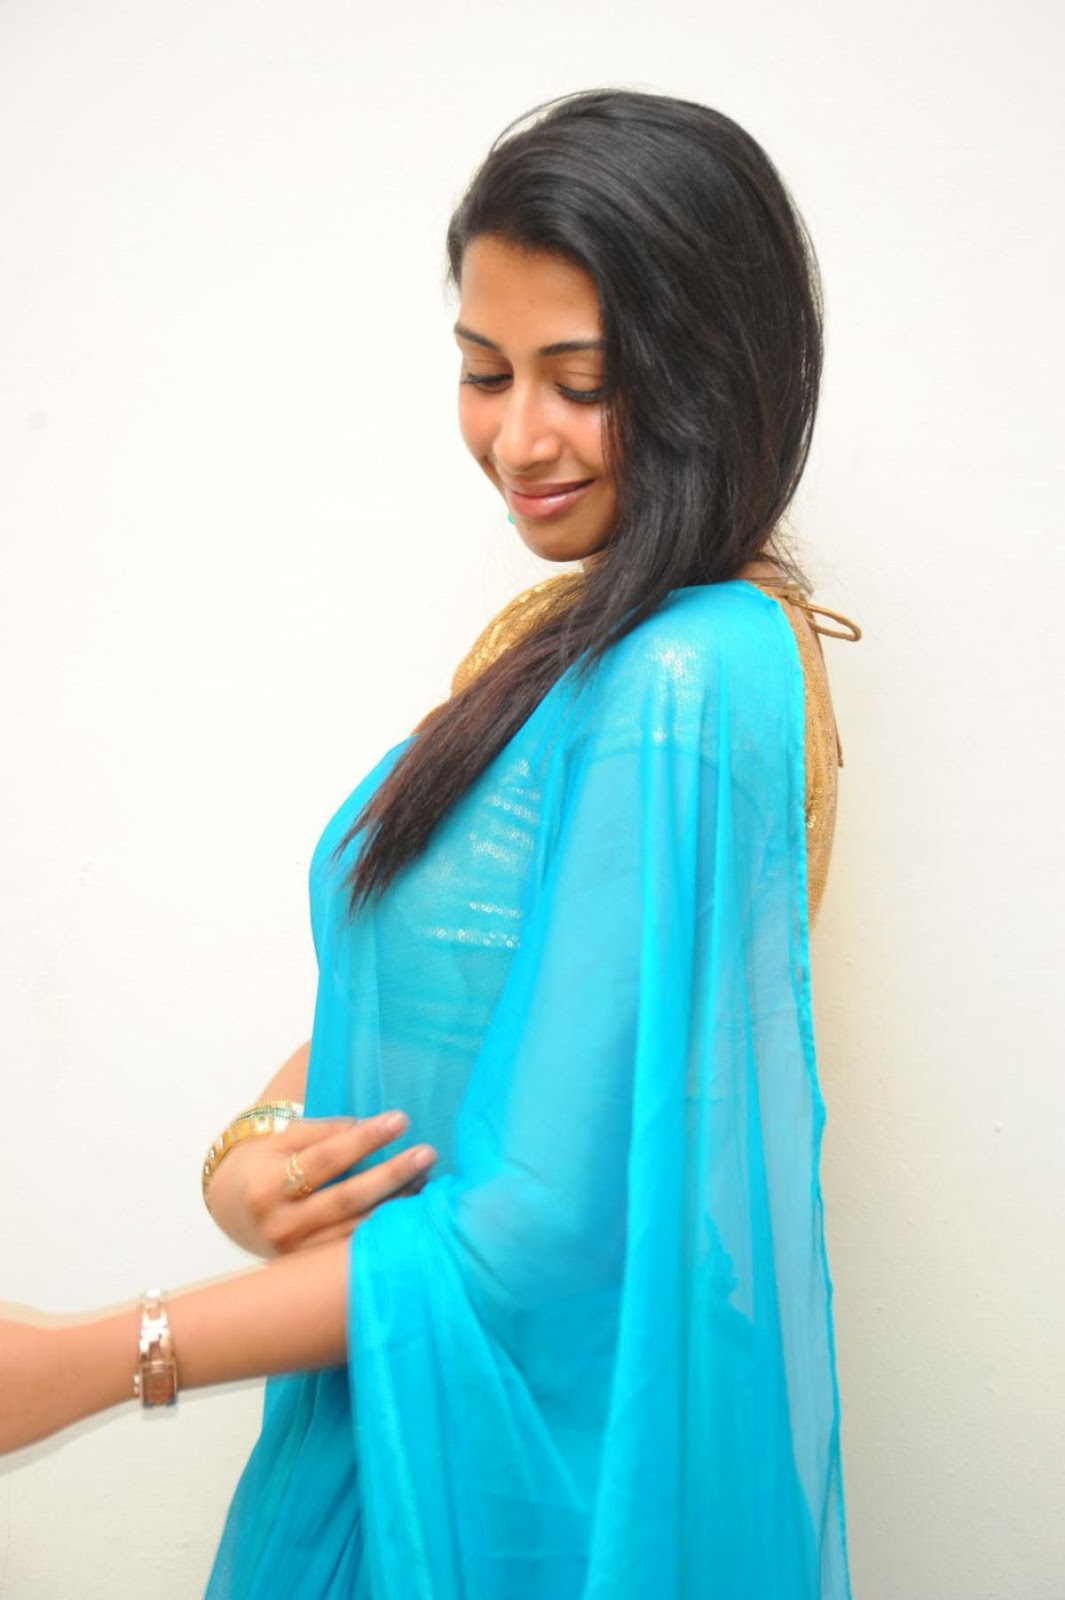 Gayathri+Iyer+Hot+Photoshoot+in+Saree+Gayathri+Iyer+New+Spicy+Stills